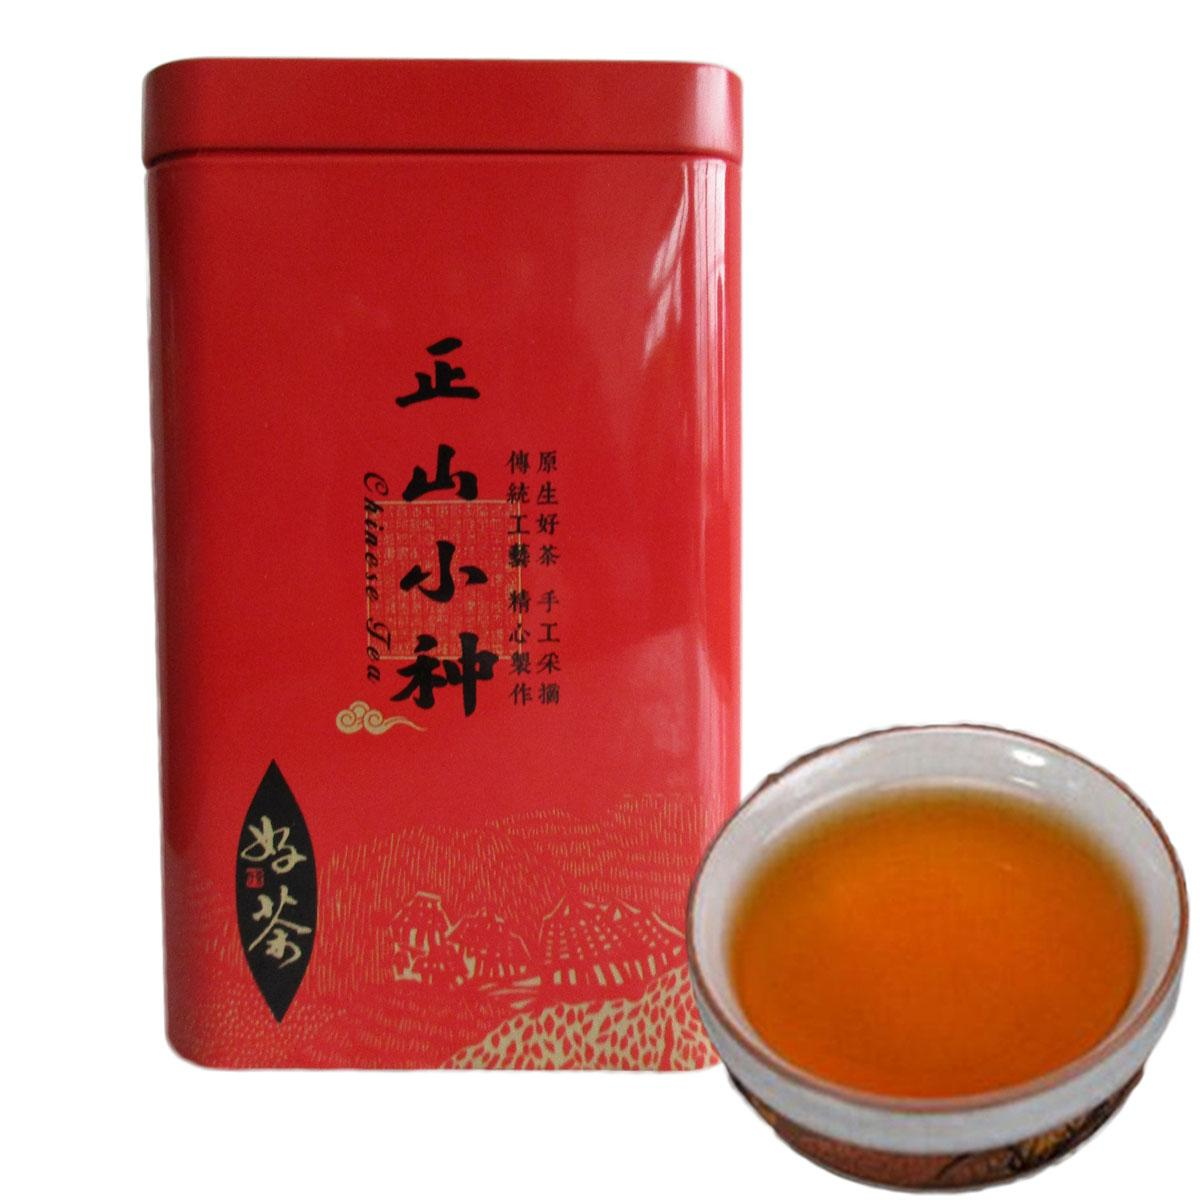 200g Chinese Organic Black Tea Lapsang Souchong Superior Oolong Red Tea Health Care New Cooked Tea Green Food Gift Package